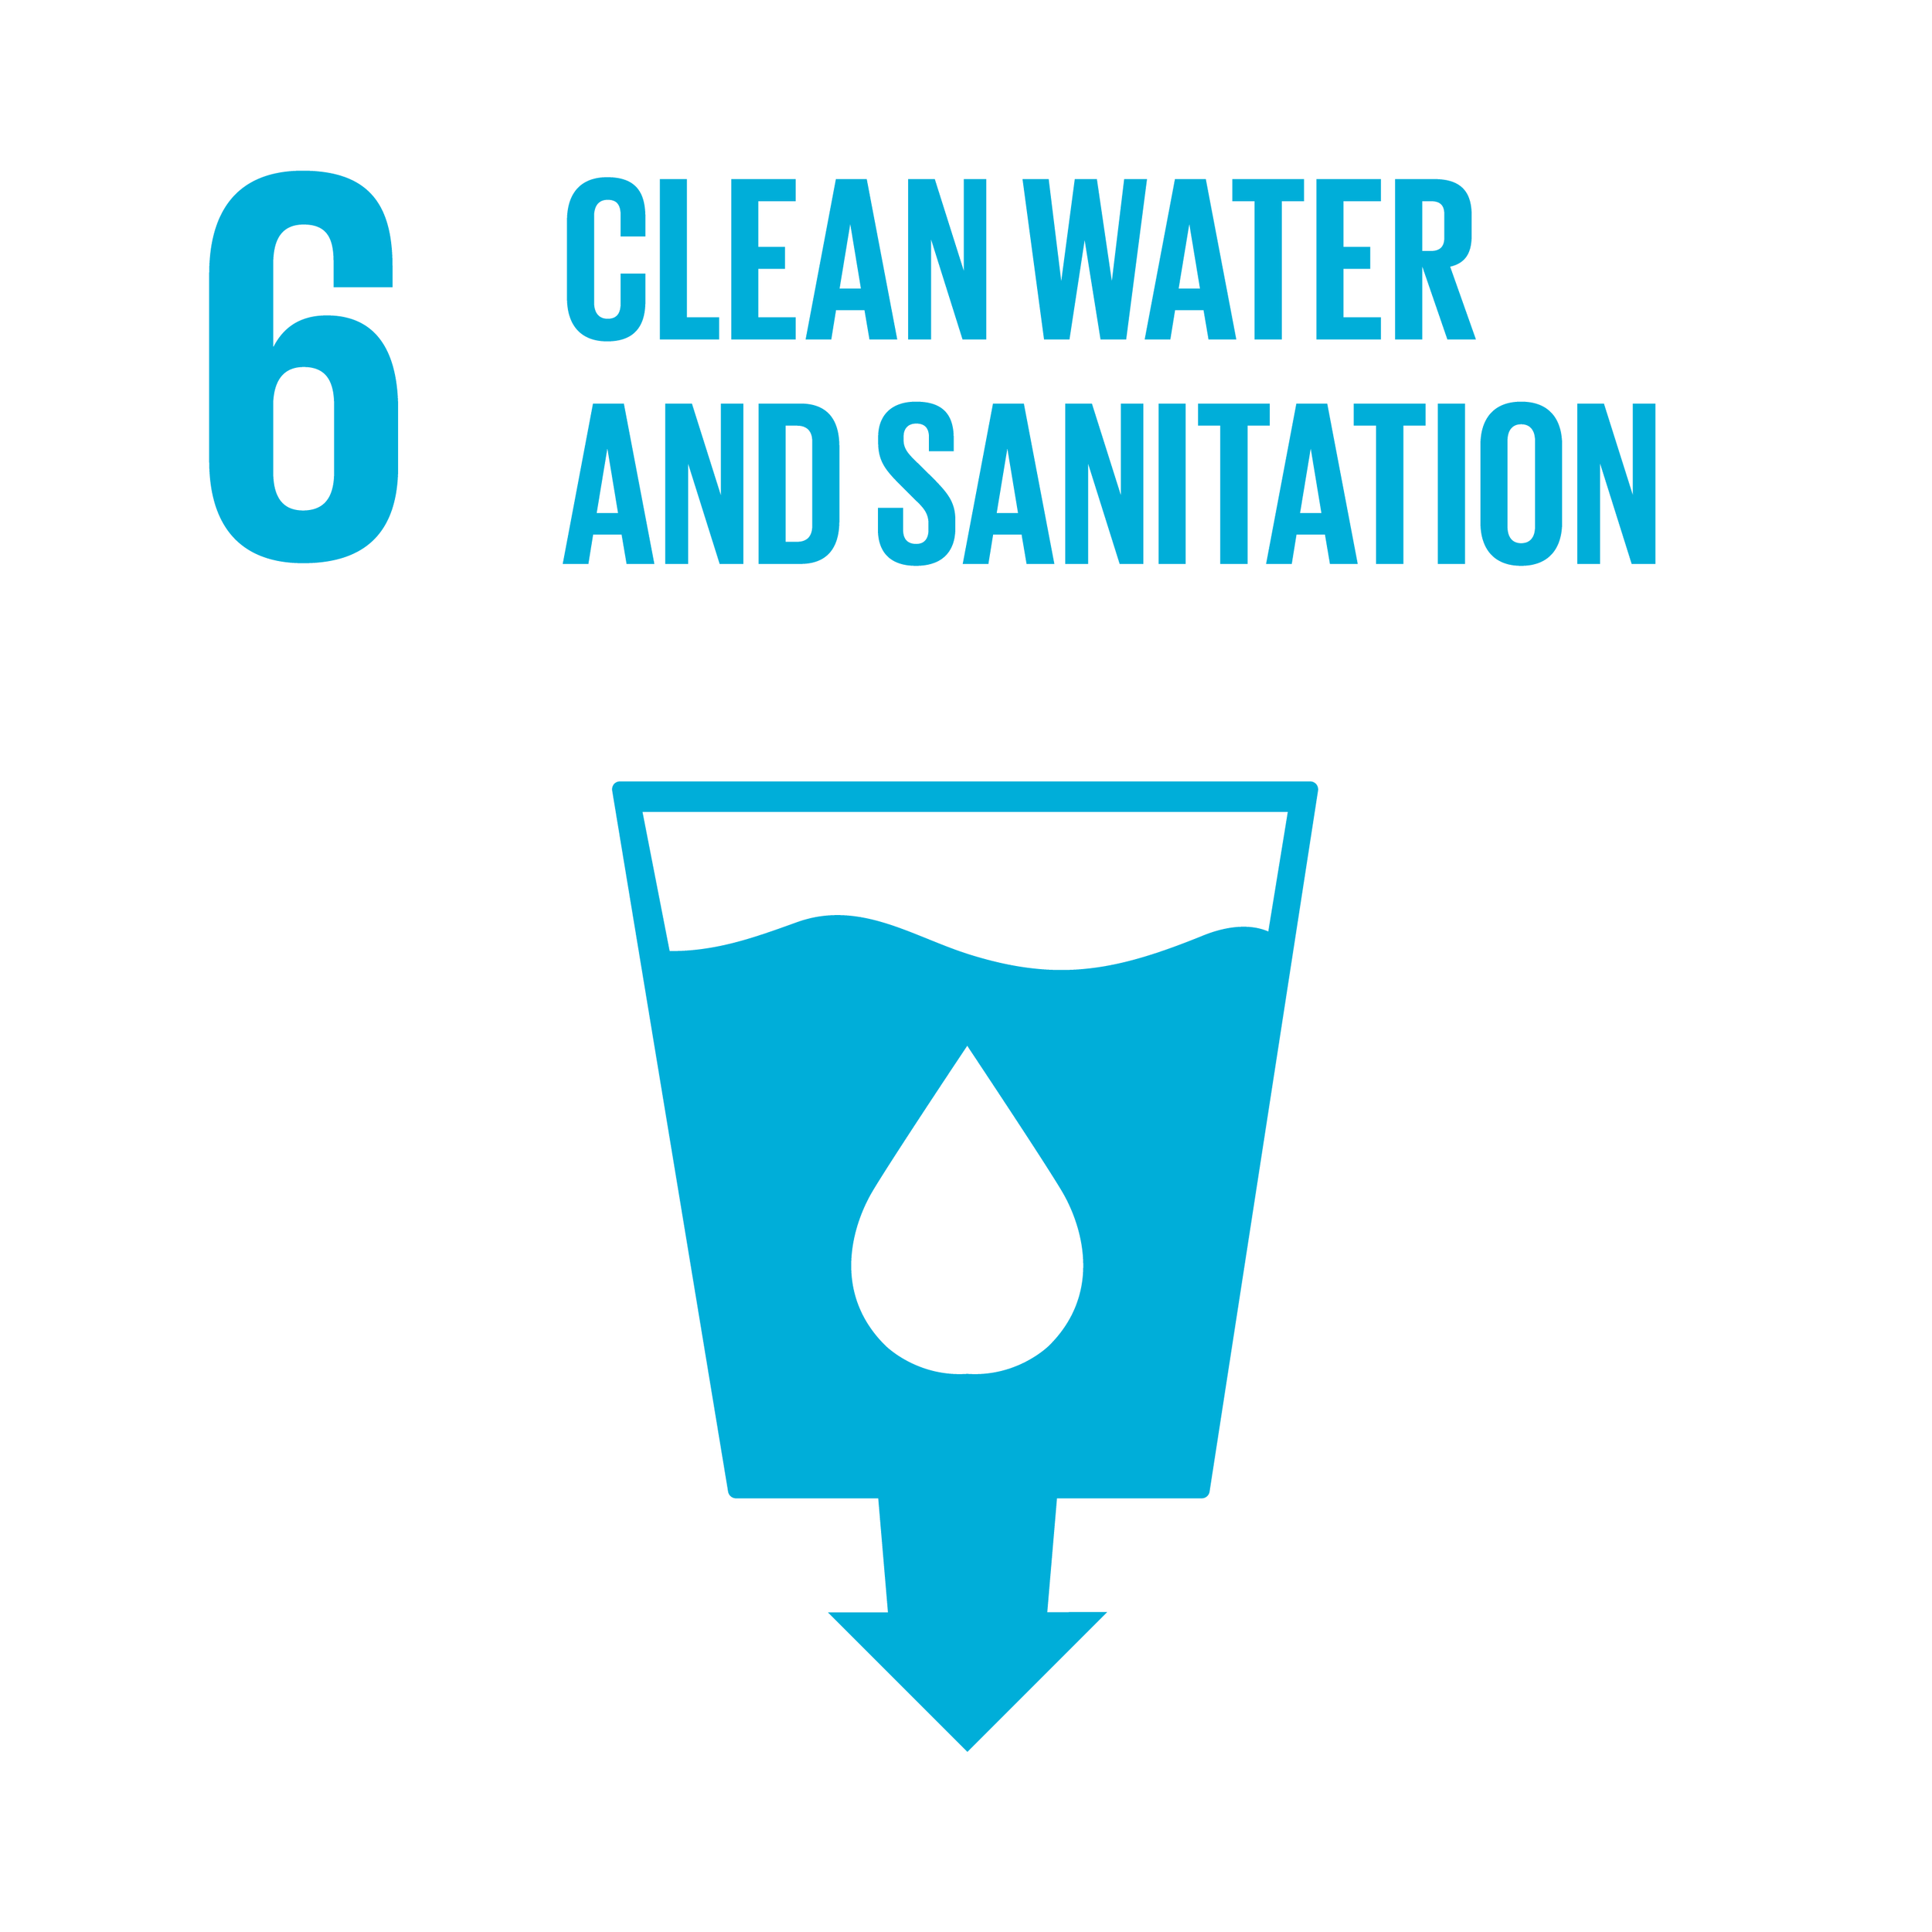 E_INVERTED SDG goals_icons-individual-RGB-06.png